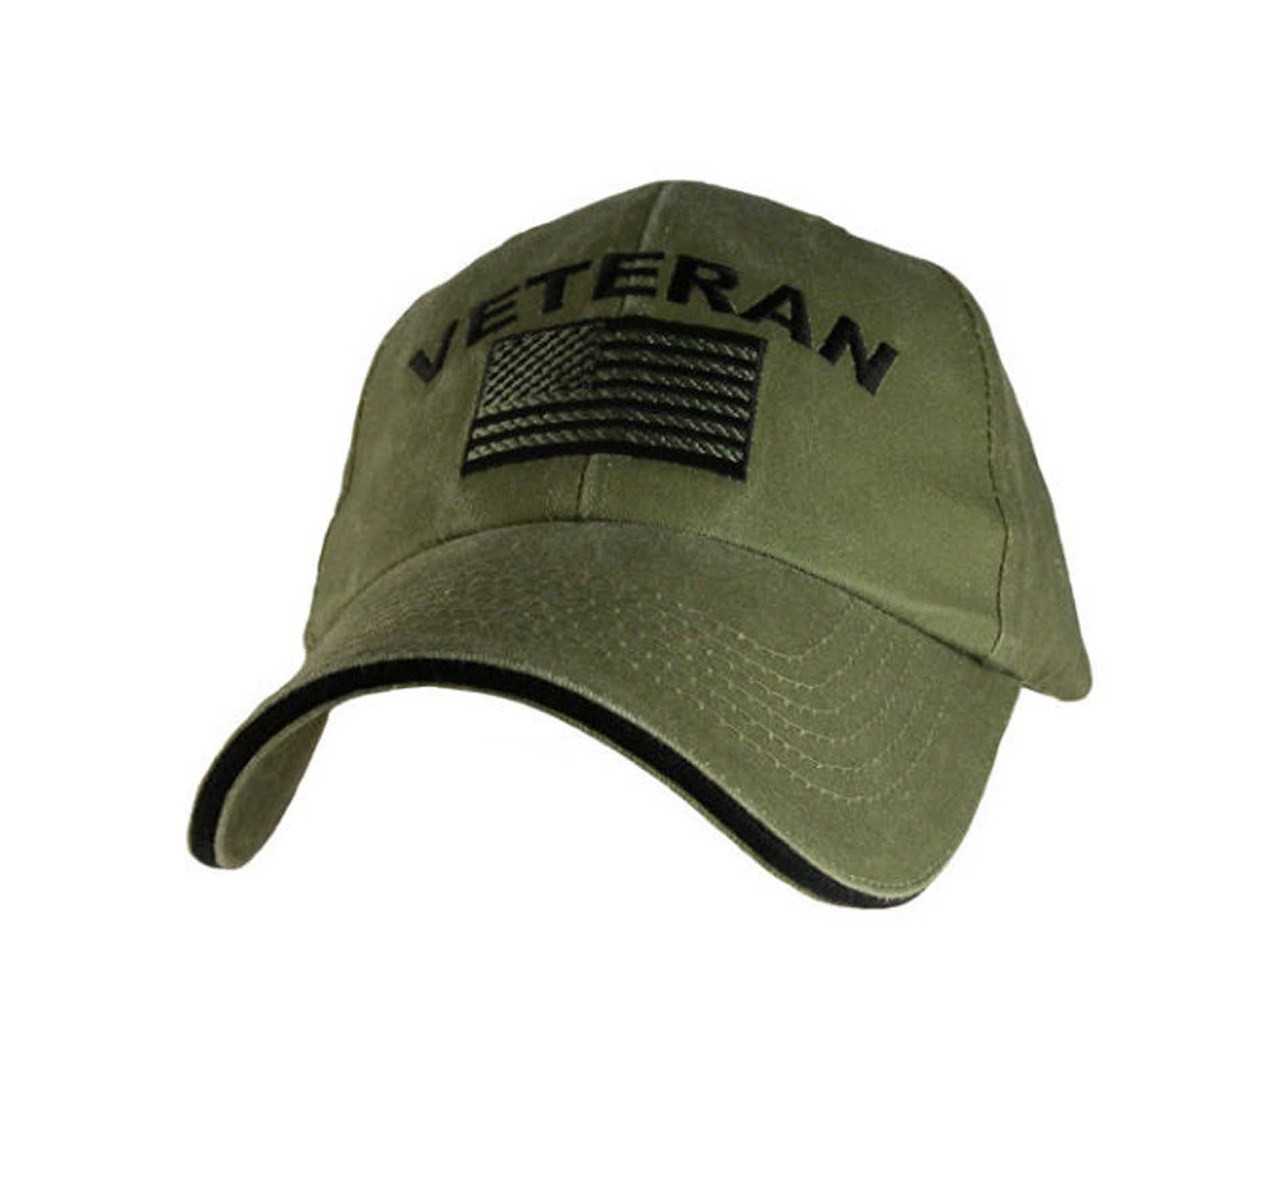 fd2b3d1d7aa US ARMY Veteran - U.S. Army with Flag OD Green Baseball Cap Hat